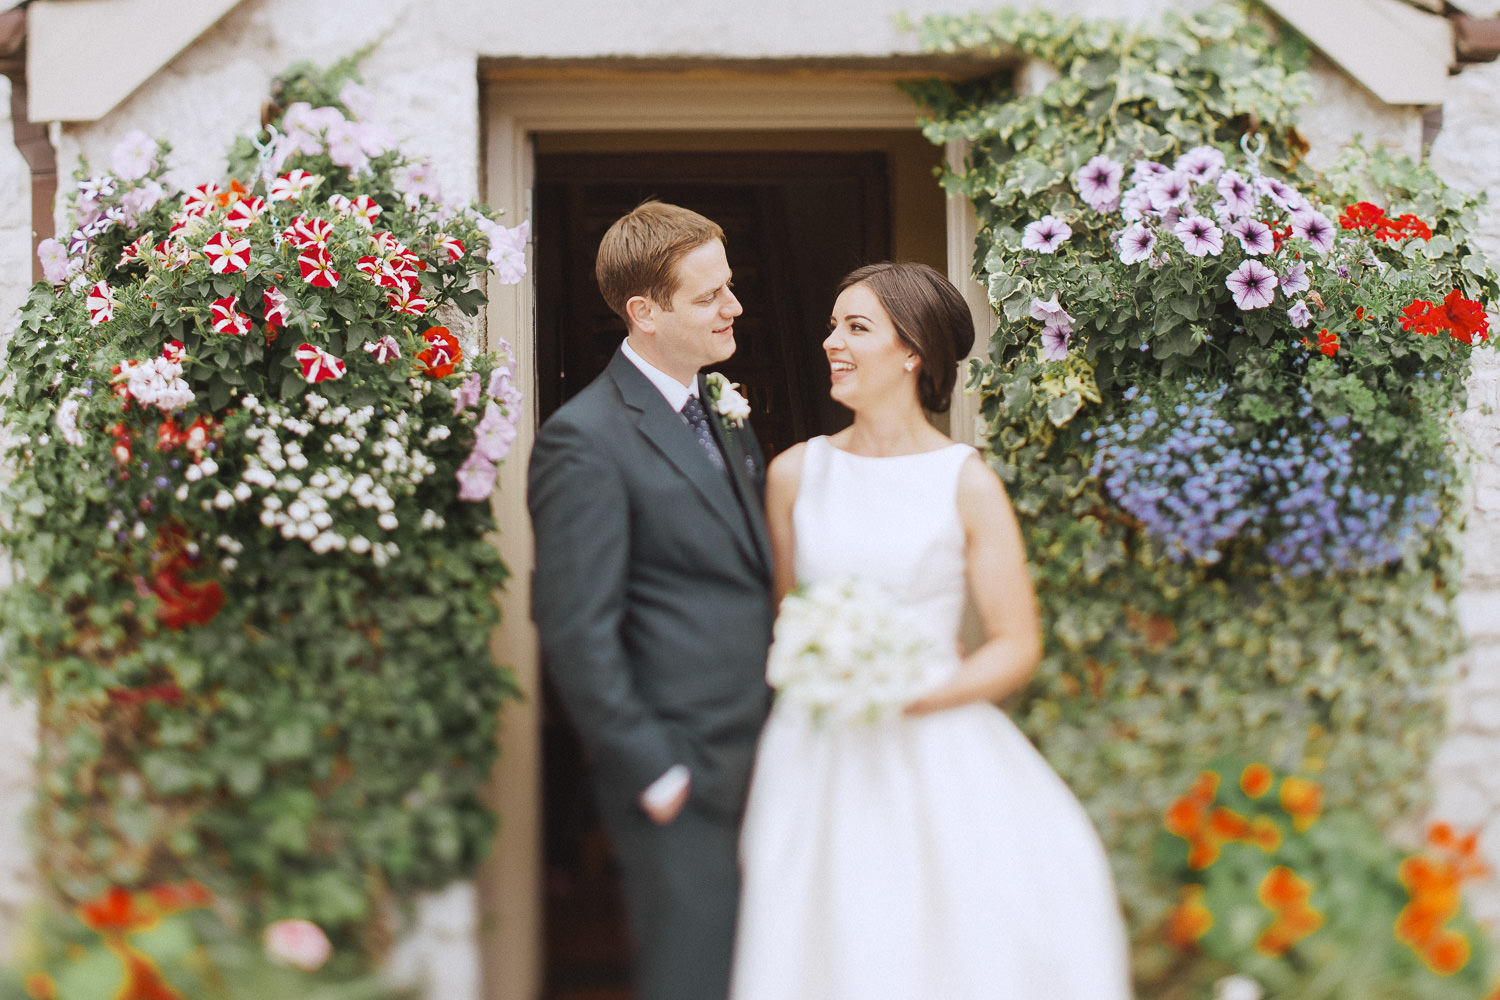 a bride and groom standing in a doorway full of flowers